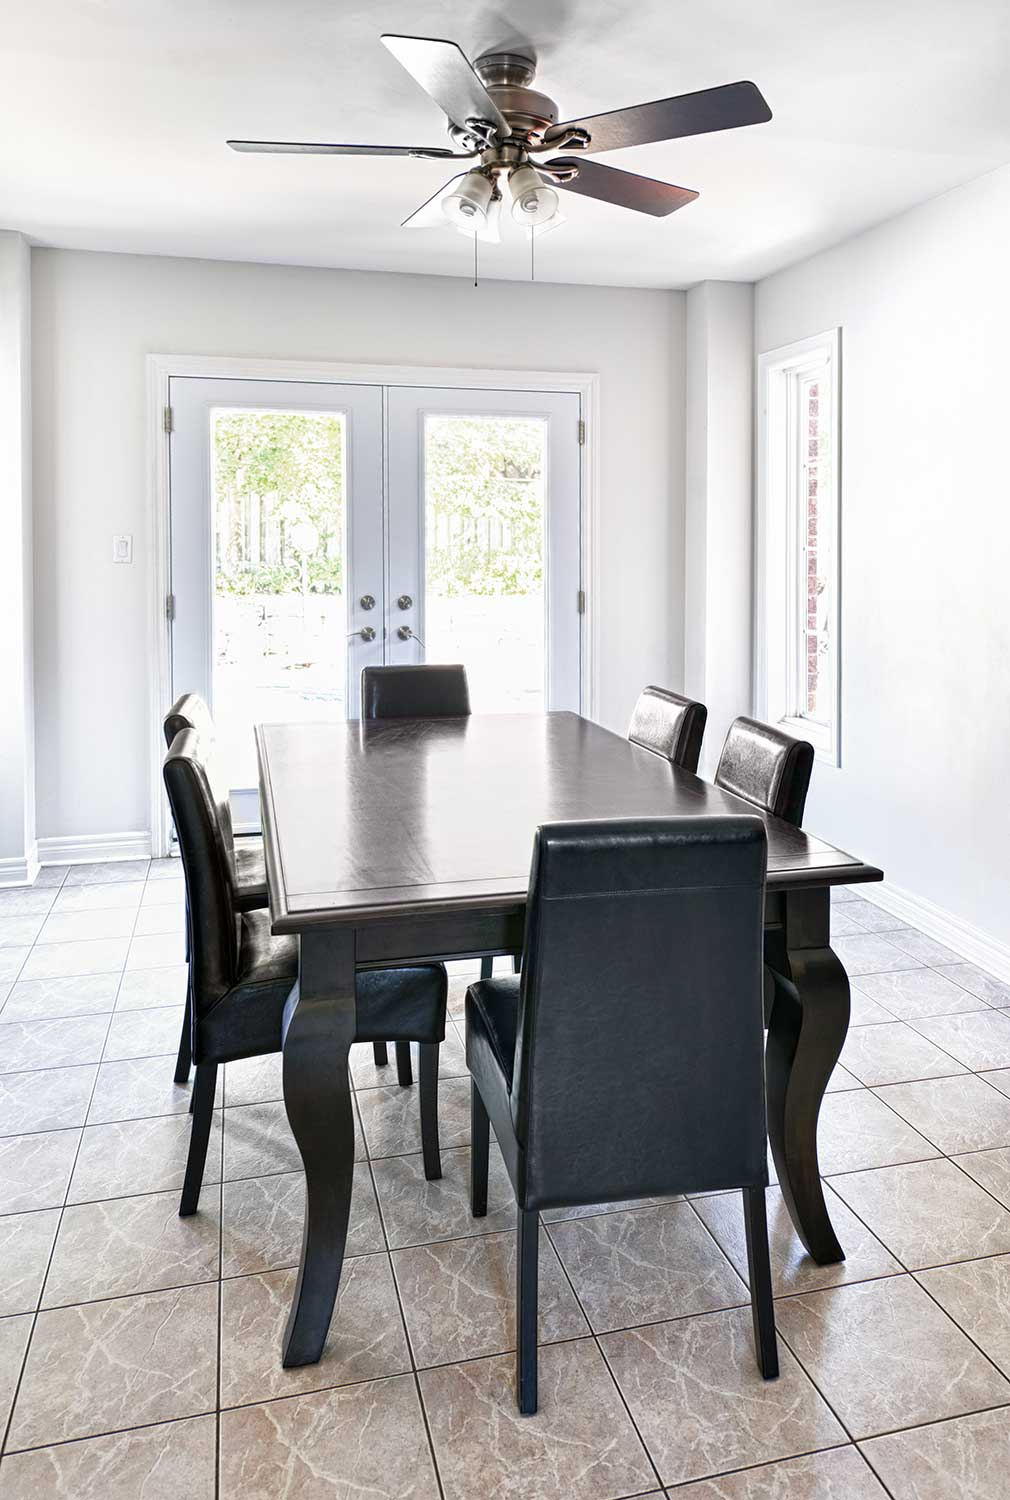 Interior with dining table and ceiling fan